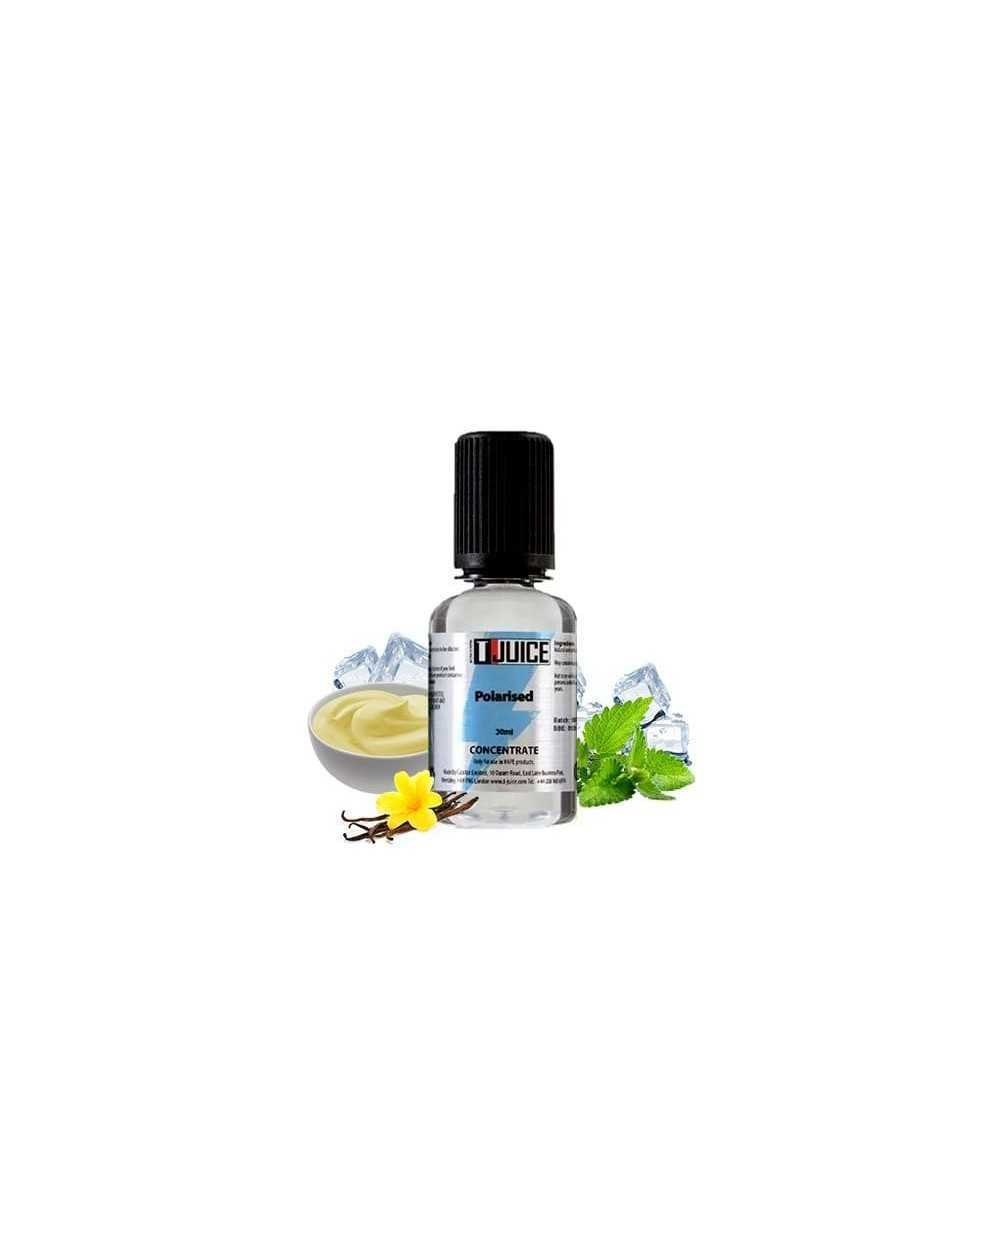 Concentrate aroma Polarised 30ml - T-Juice-1